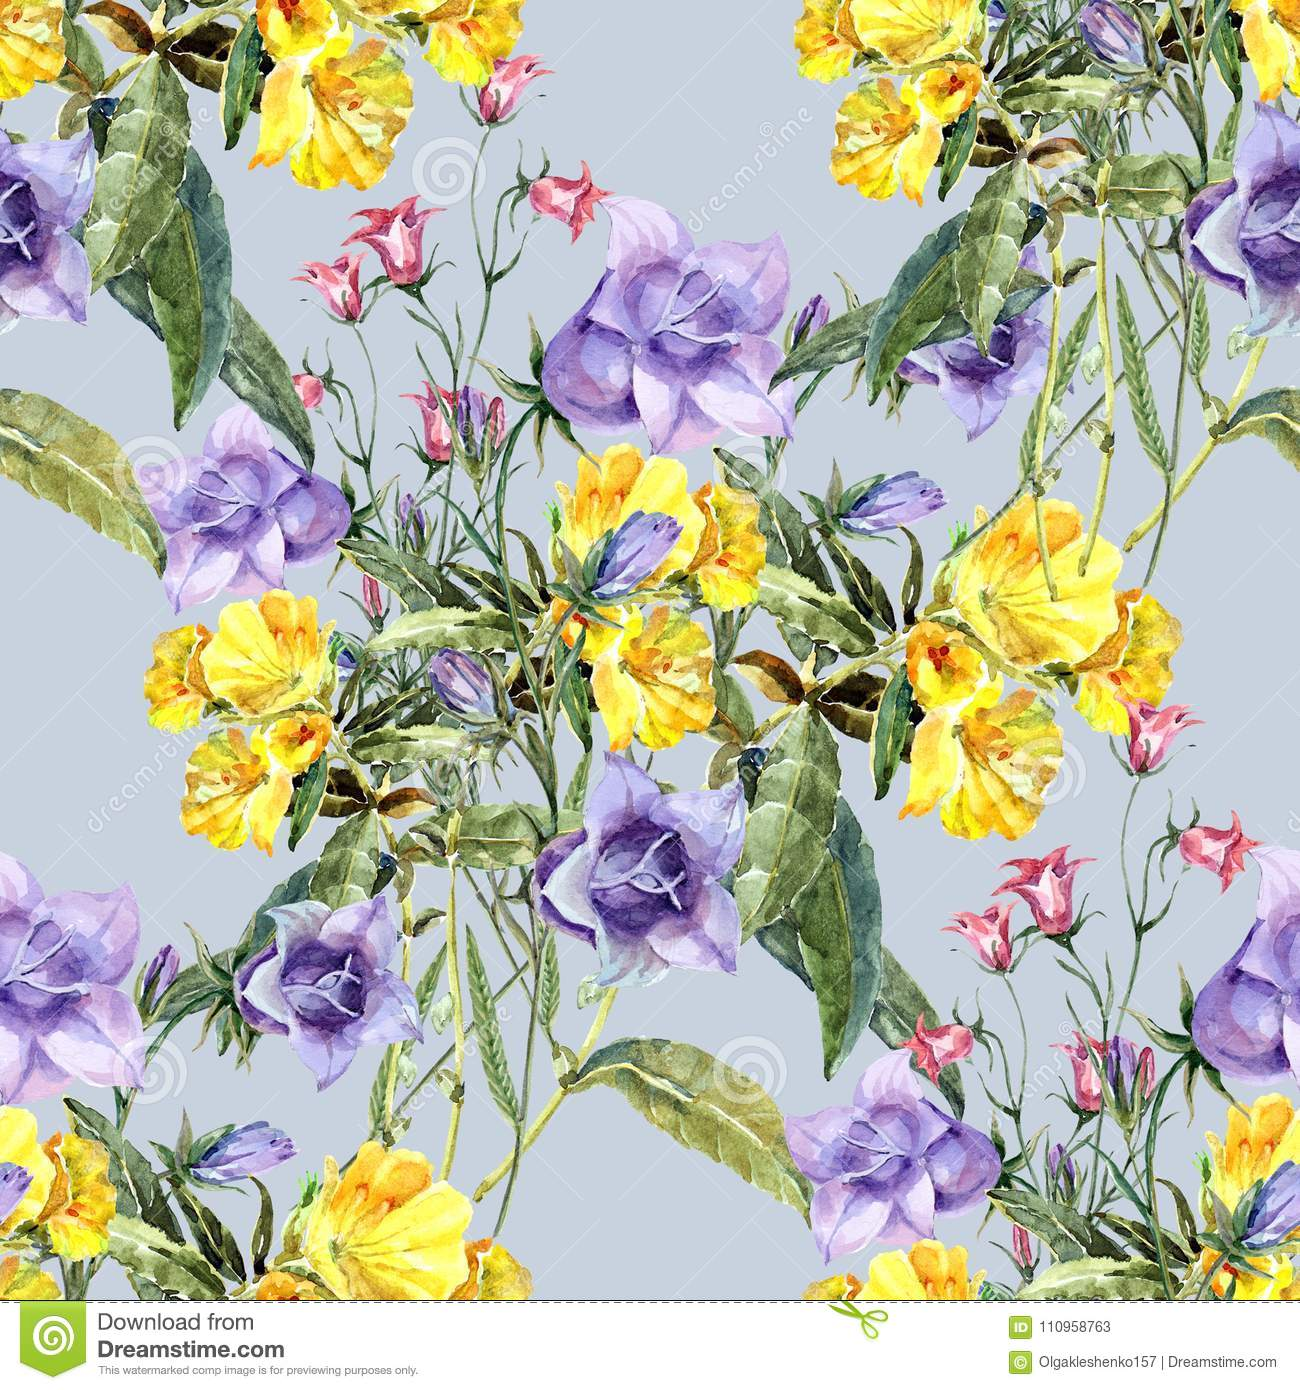 Watercolor Bouquet Meadow Flowers Floral Seamless Pattern With Blue